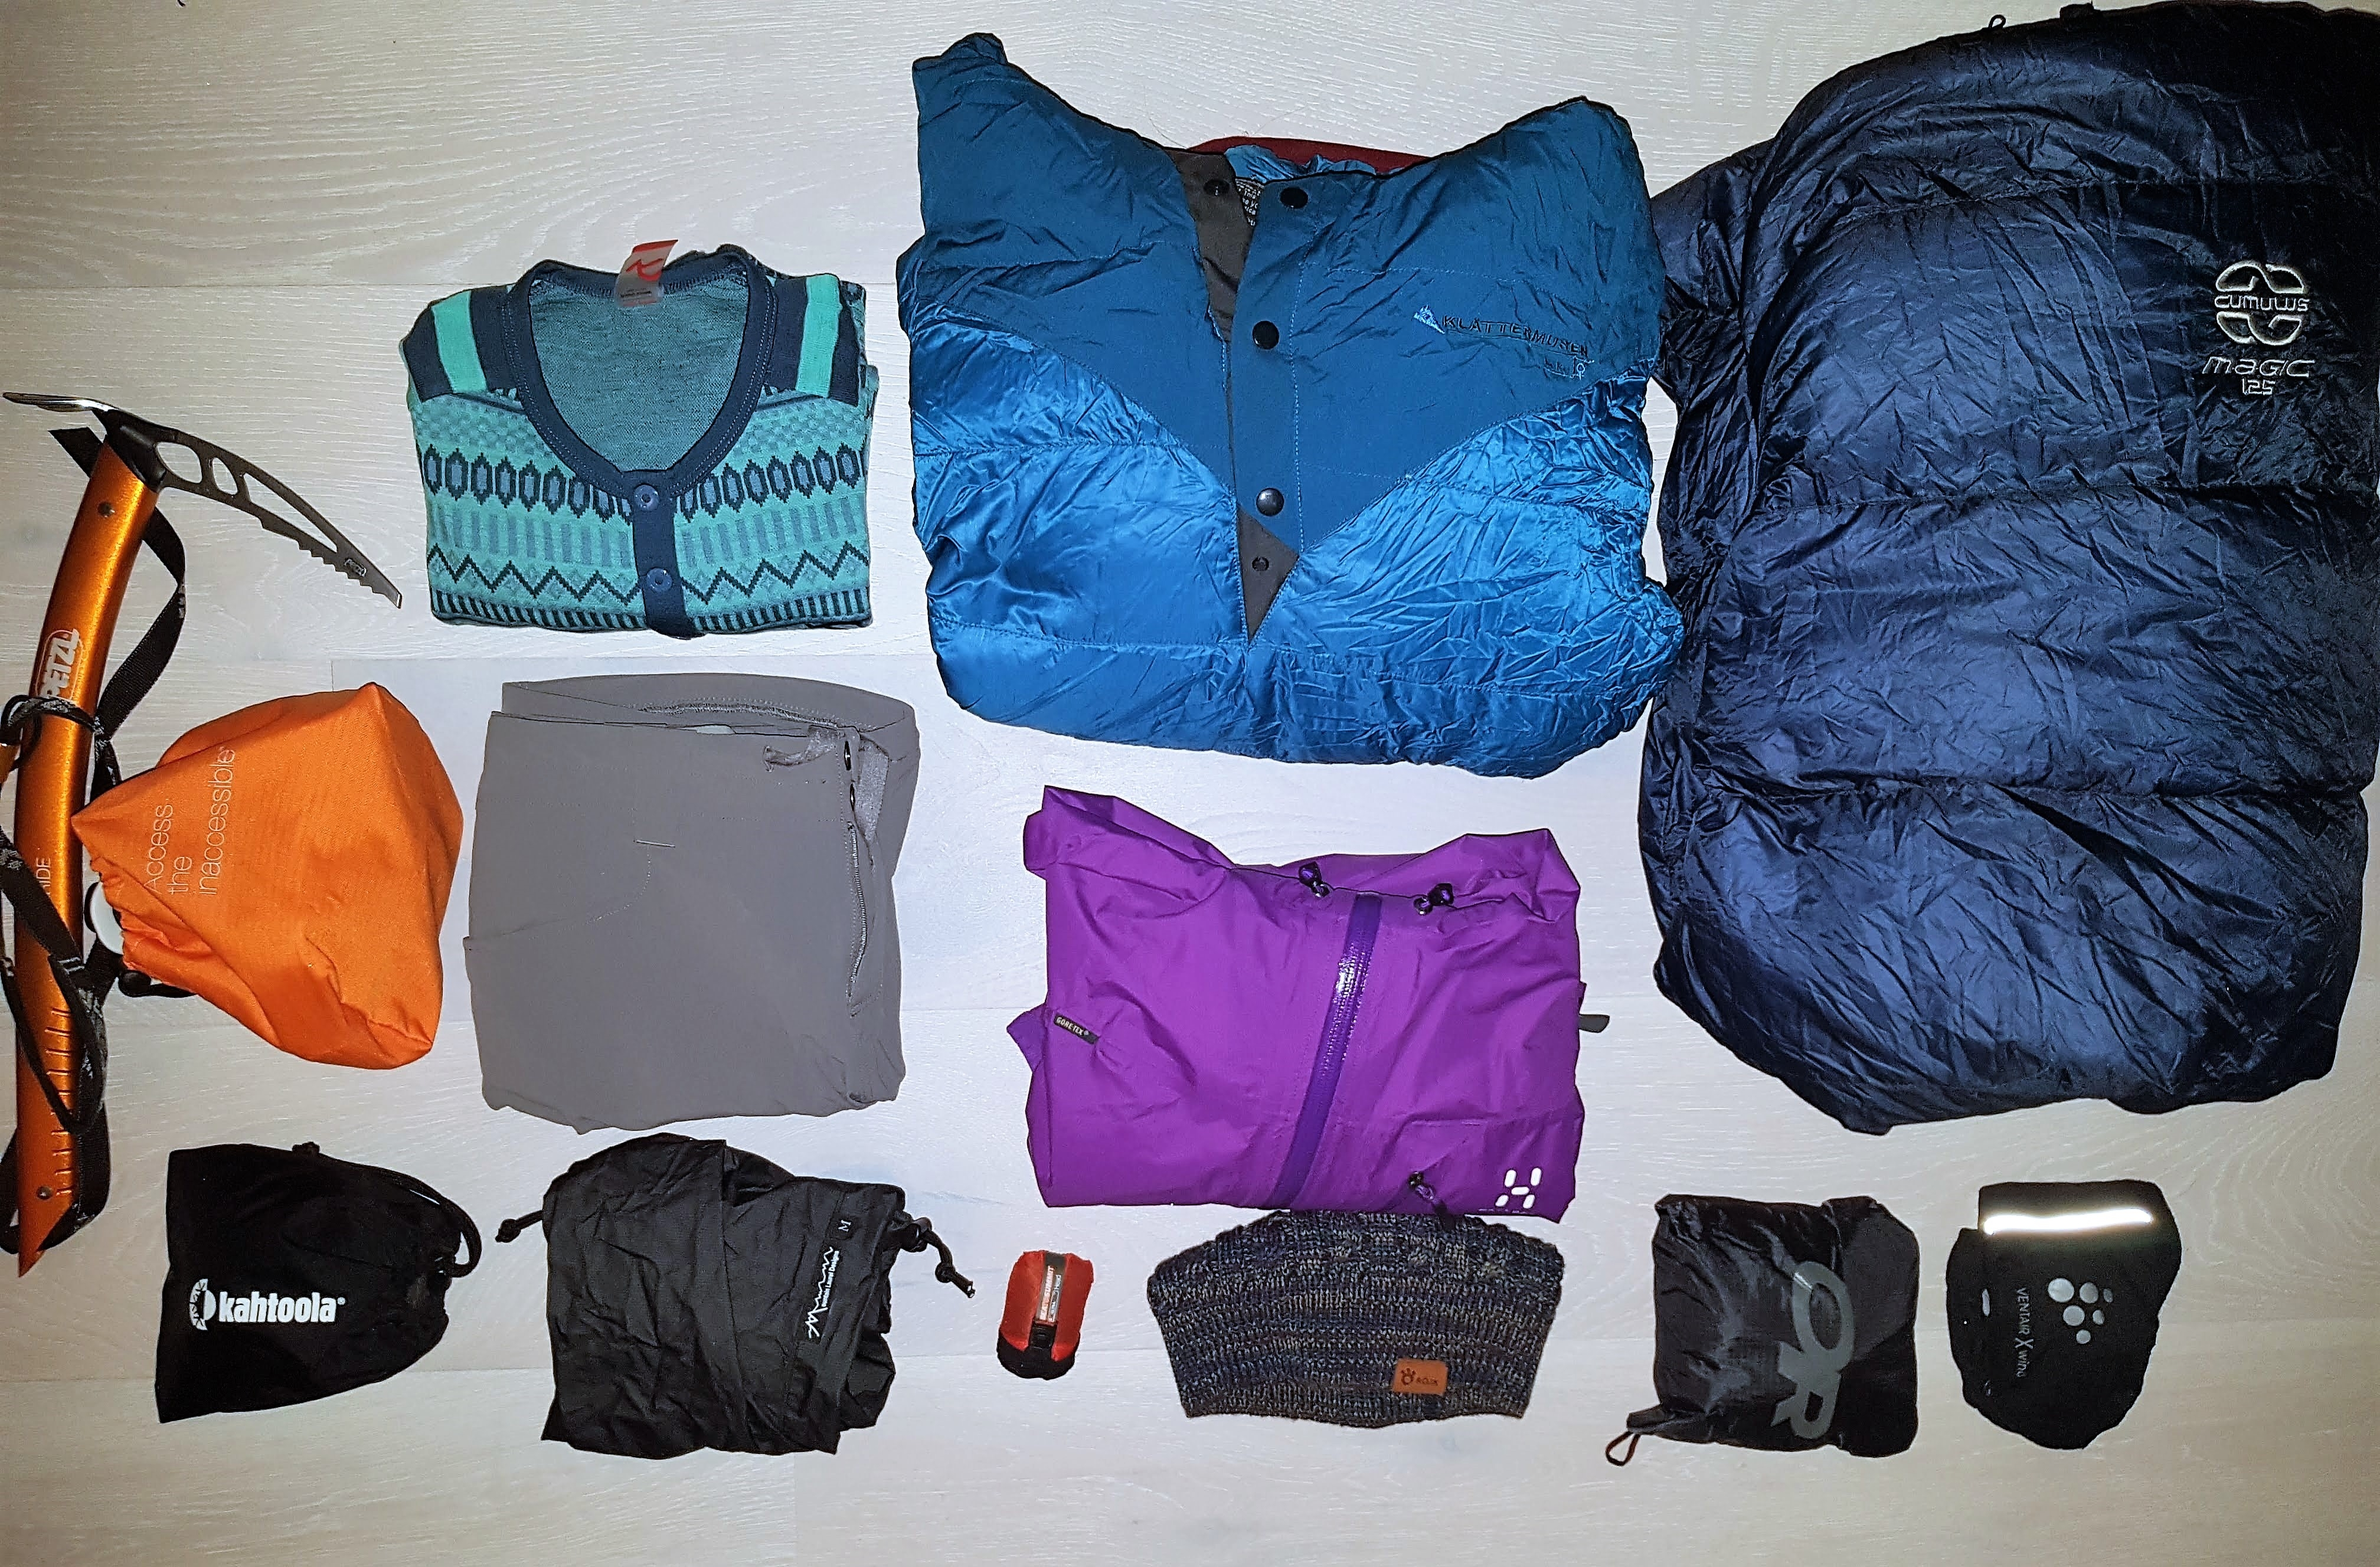 CDT Gear List, Part 4: Electronics, Miscellaneous, and Snow Gear